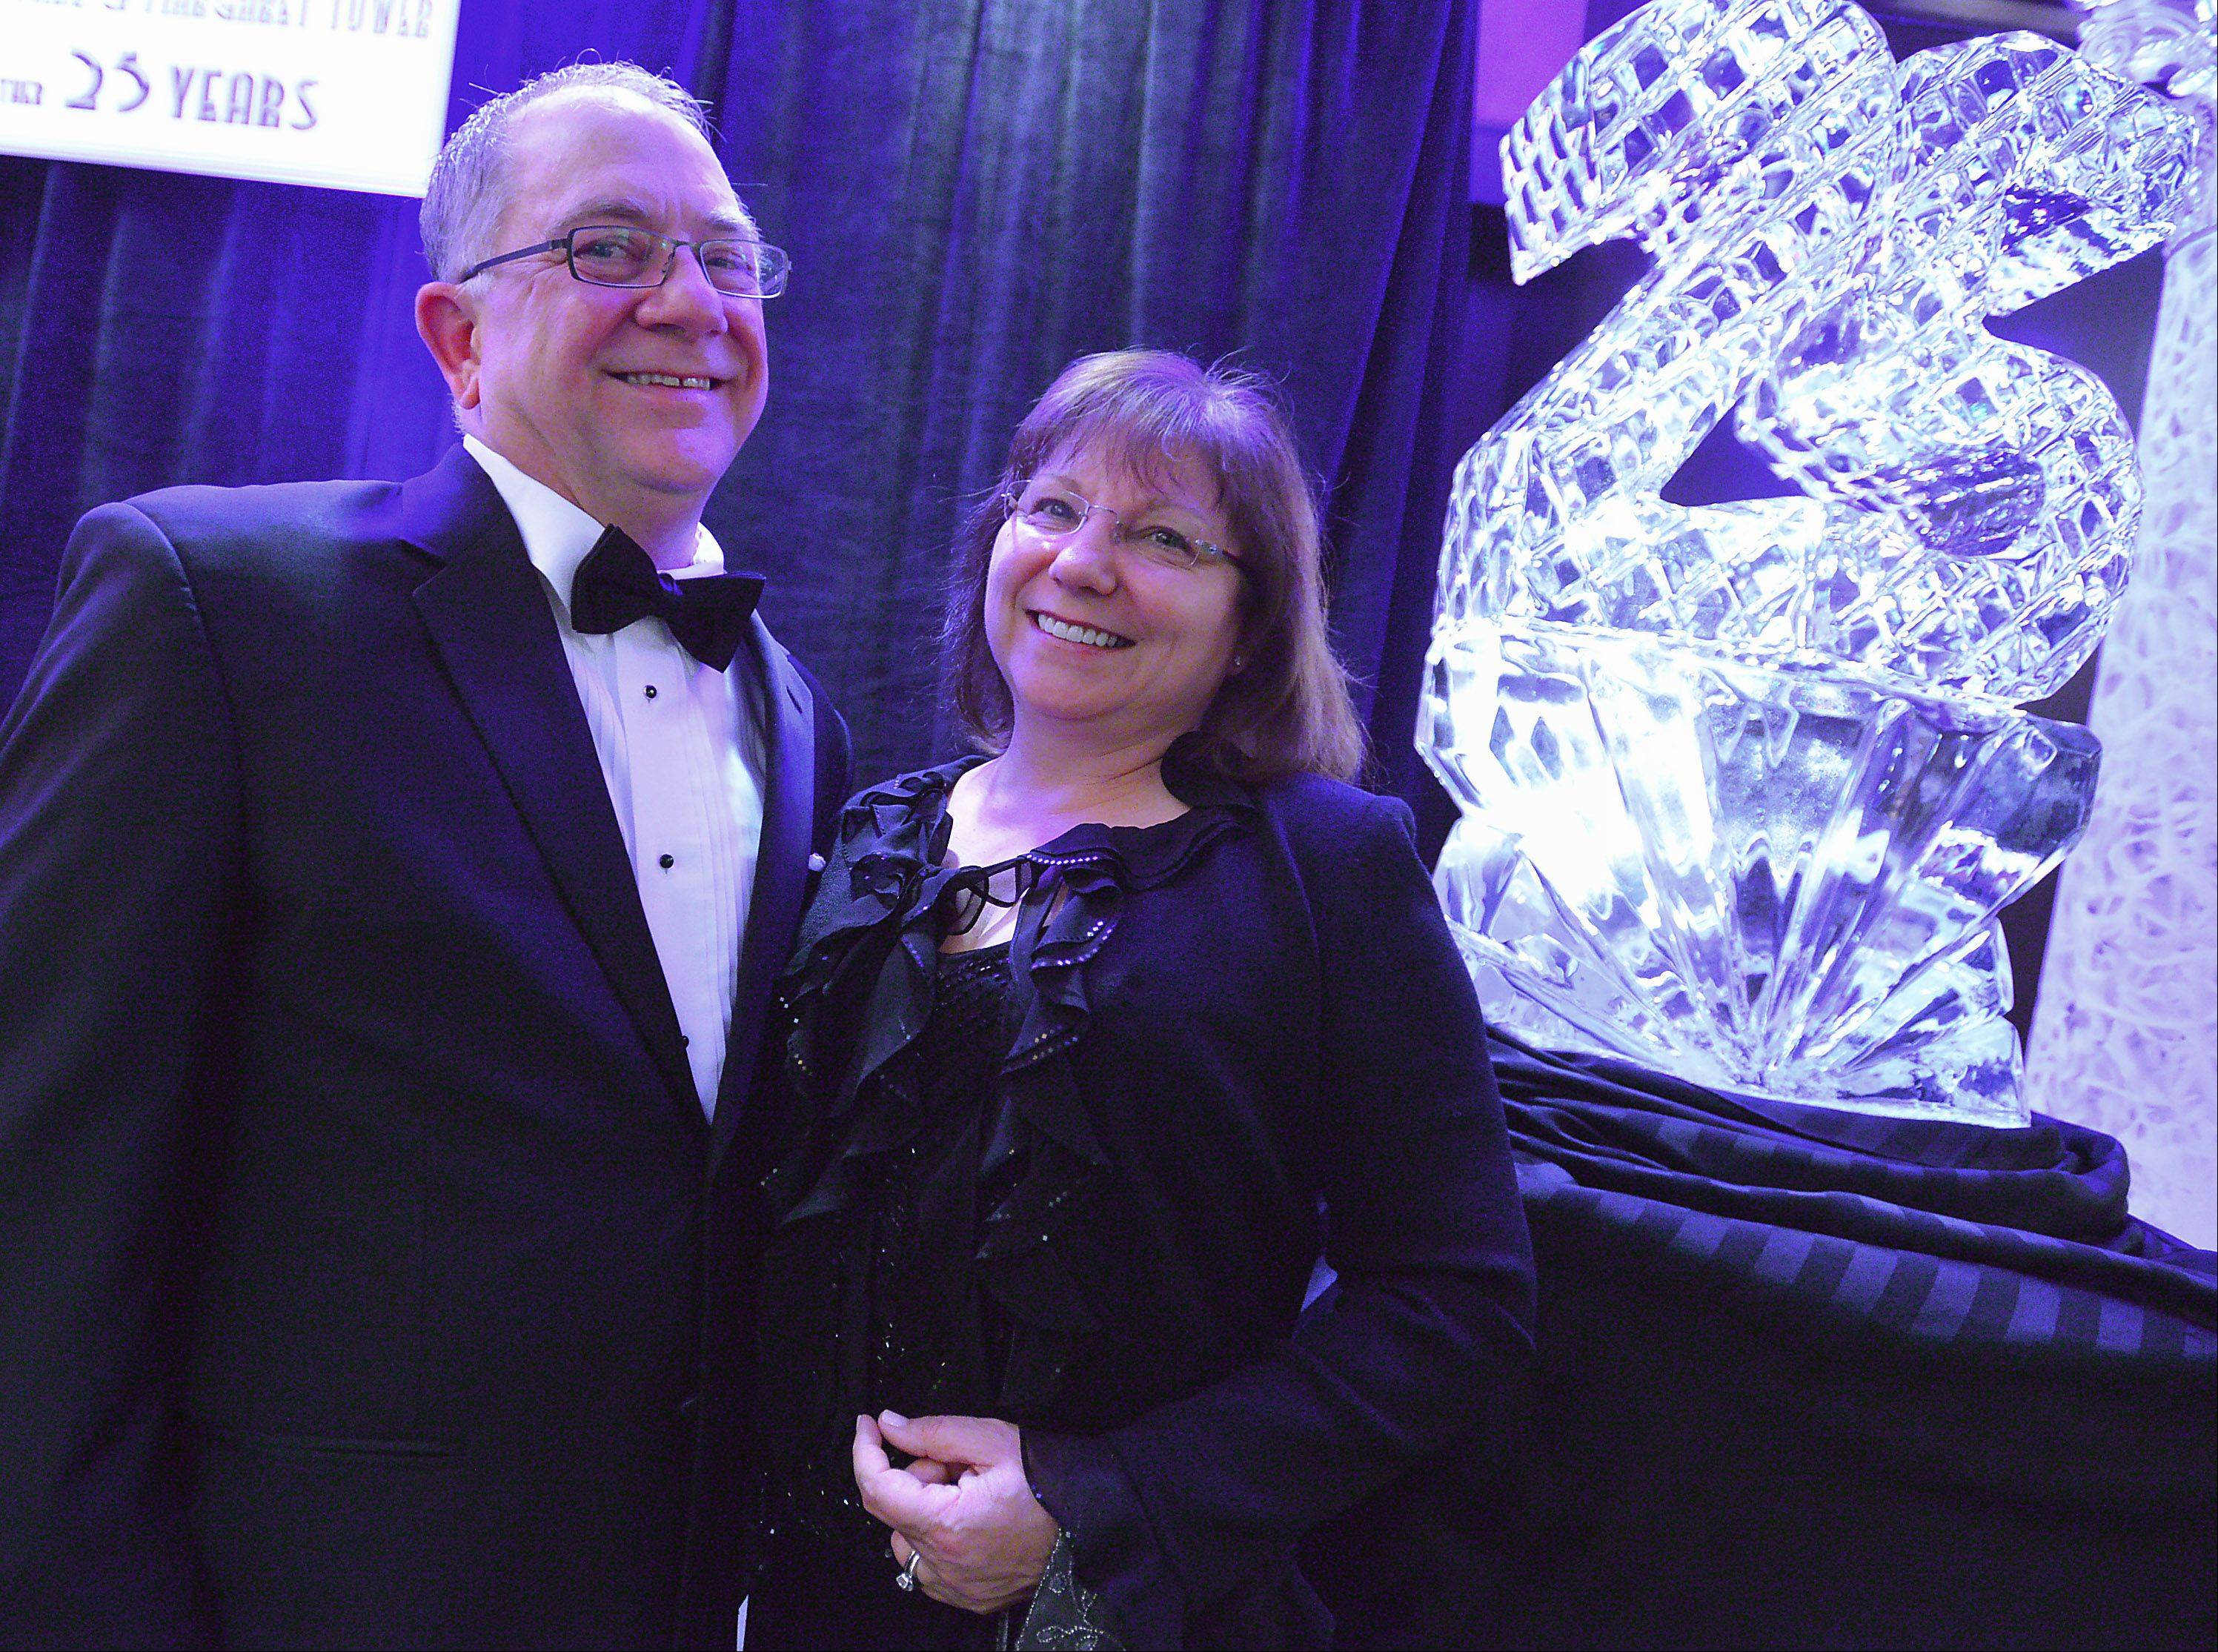 Rich and Debbie Armstrong of Palatine attended Shelter Inc.'s 25th anniversary Charity Ball on Friday night at the Schaumburg Hyatt.